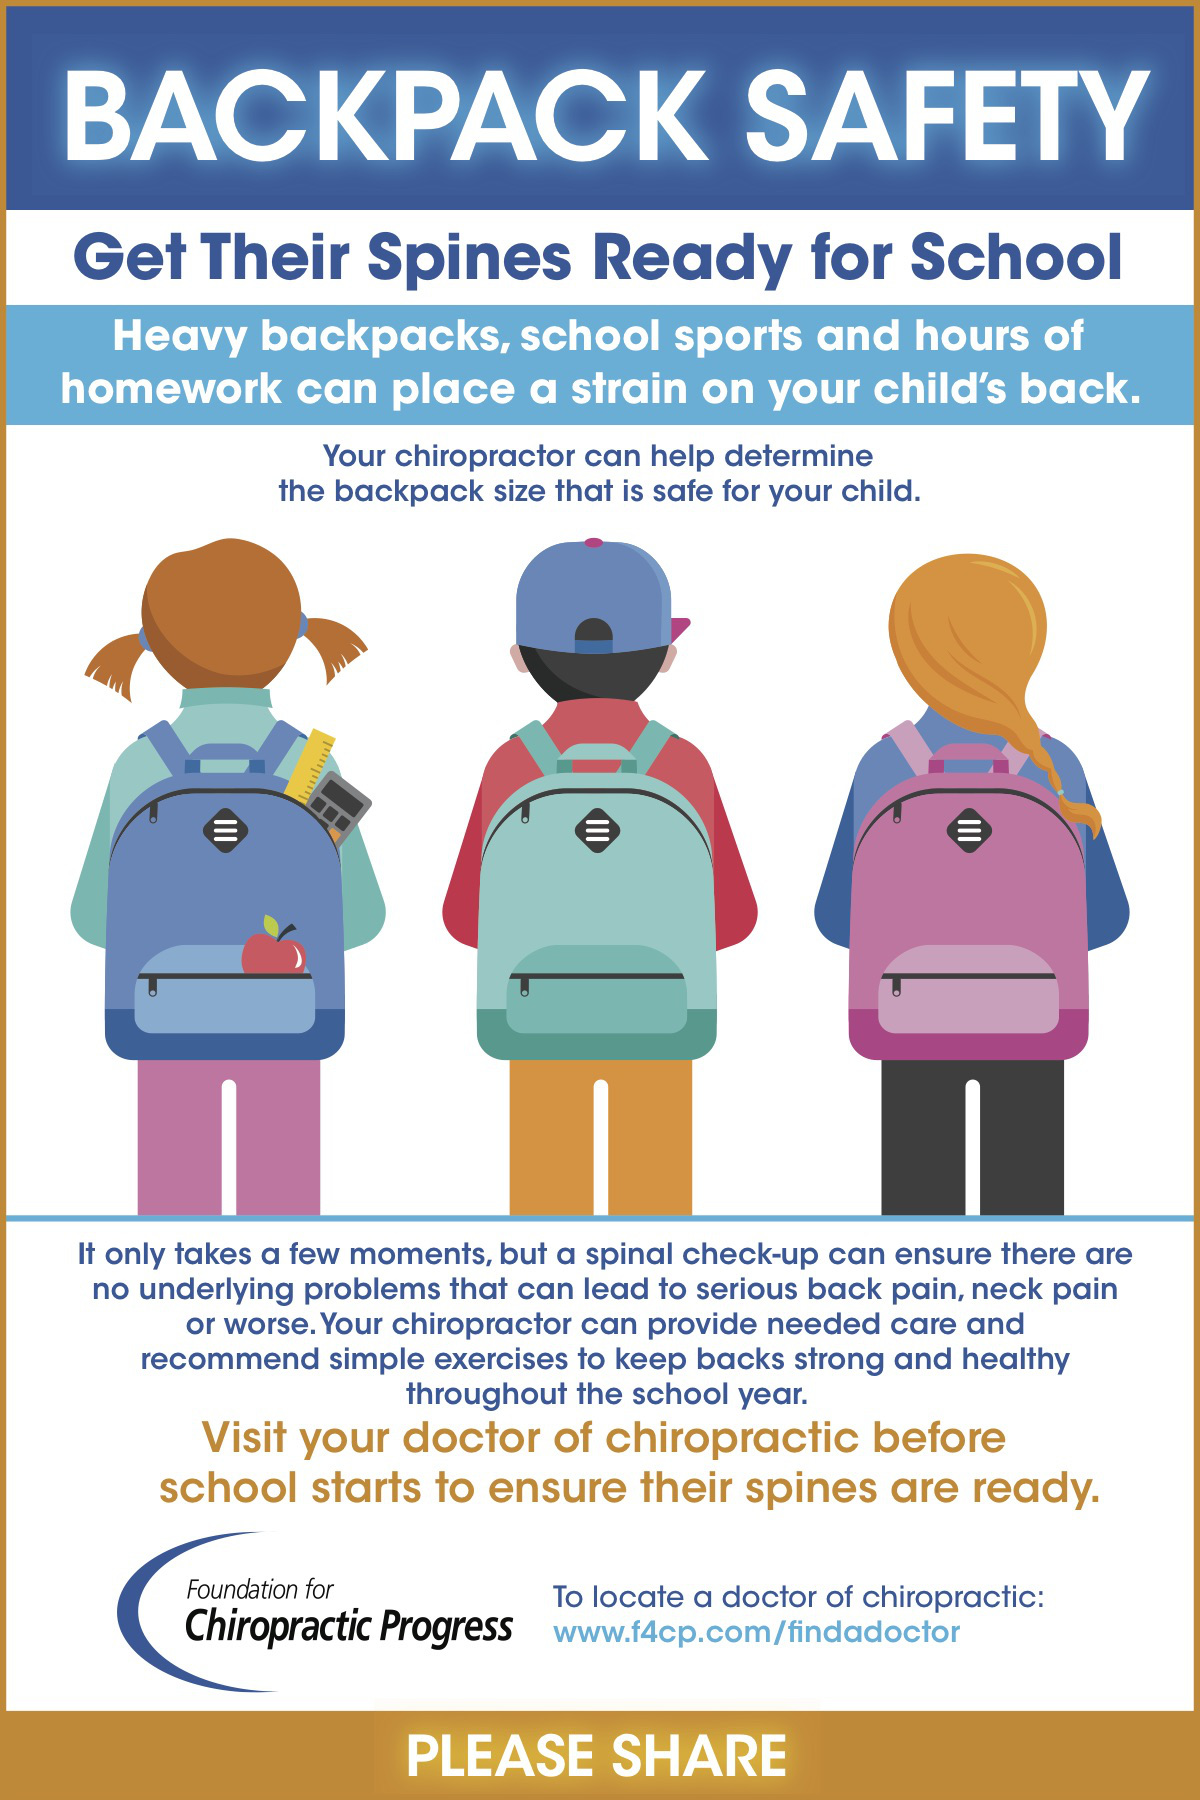 f4cp_backpack_infographic